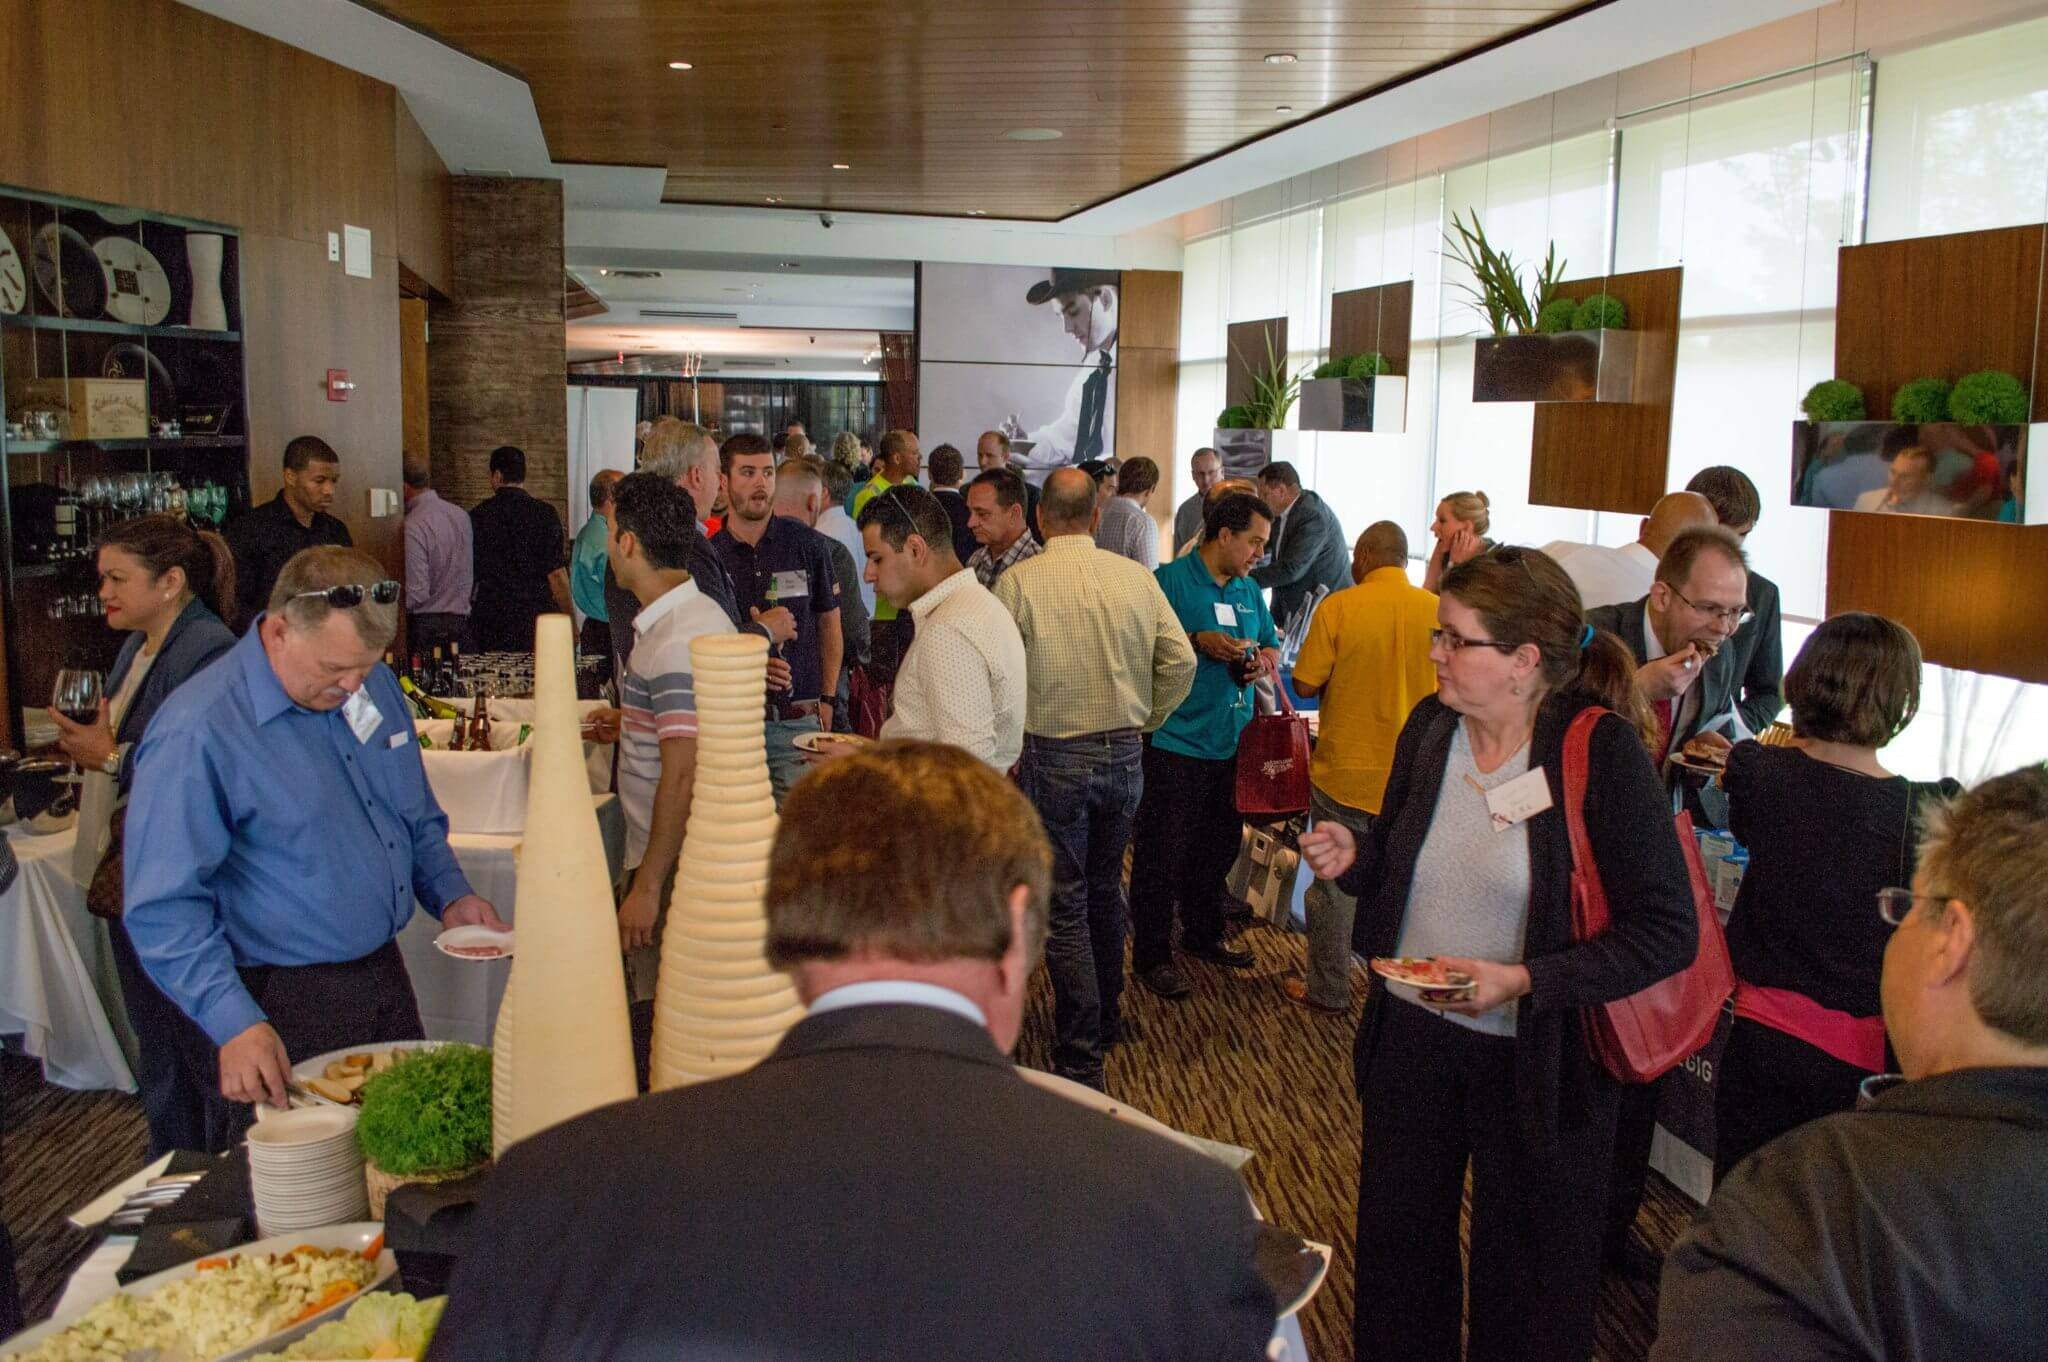 home sight and sound systems four hundred guests attended this year s event which was thursday 21 in vienna virginia that s nearly a hundred more builders and integrators